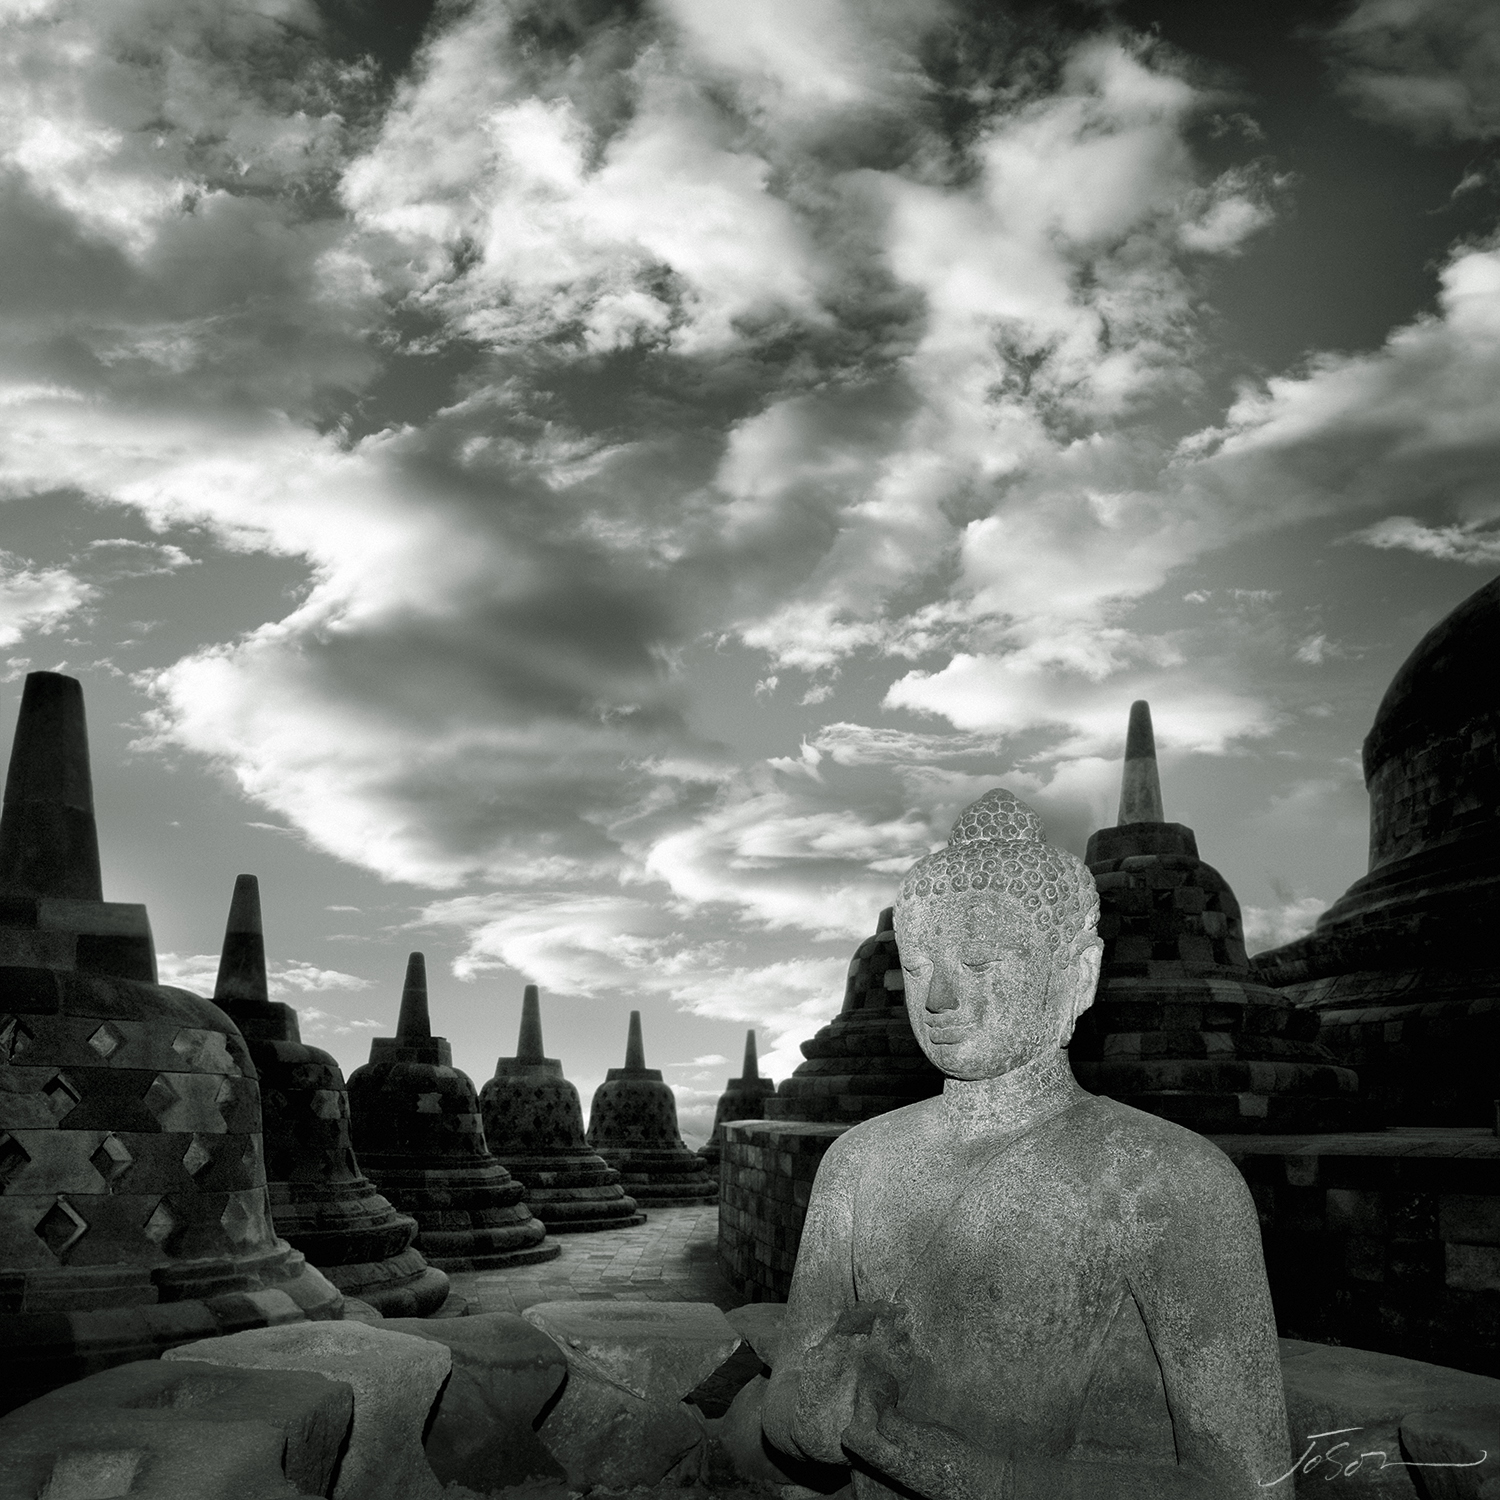 Statue of Buddha in Stupas at Borbudur Temple II, Yogyakarta, Indonesia.jpg